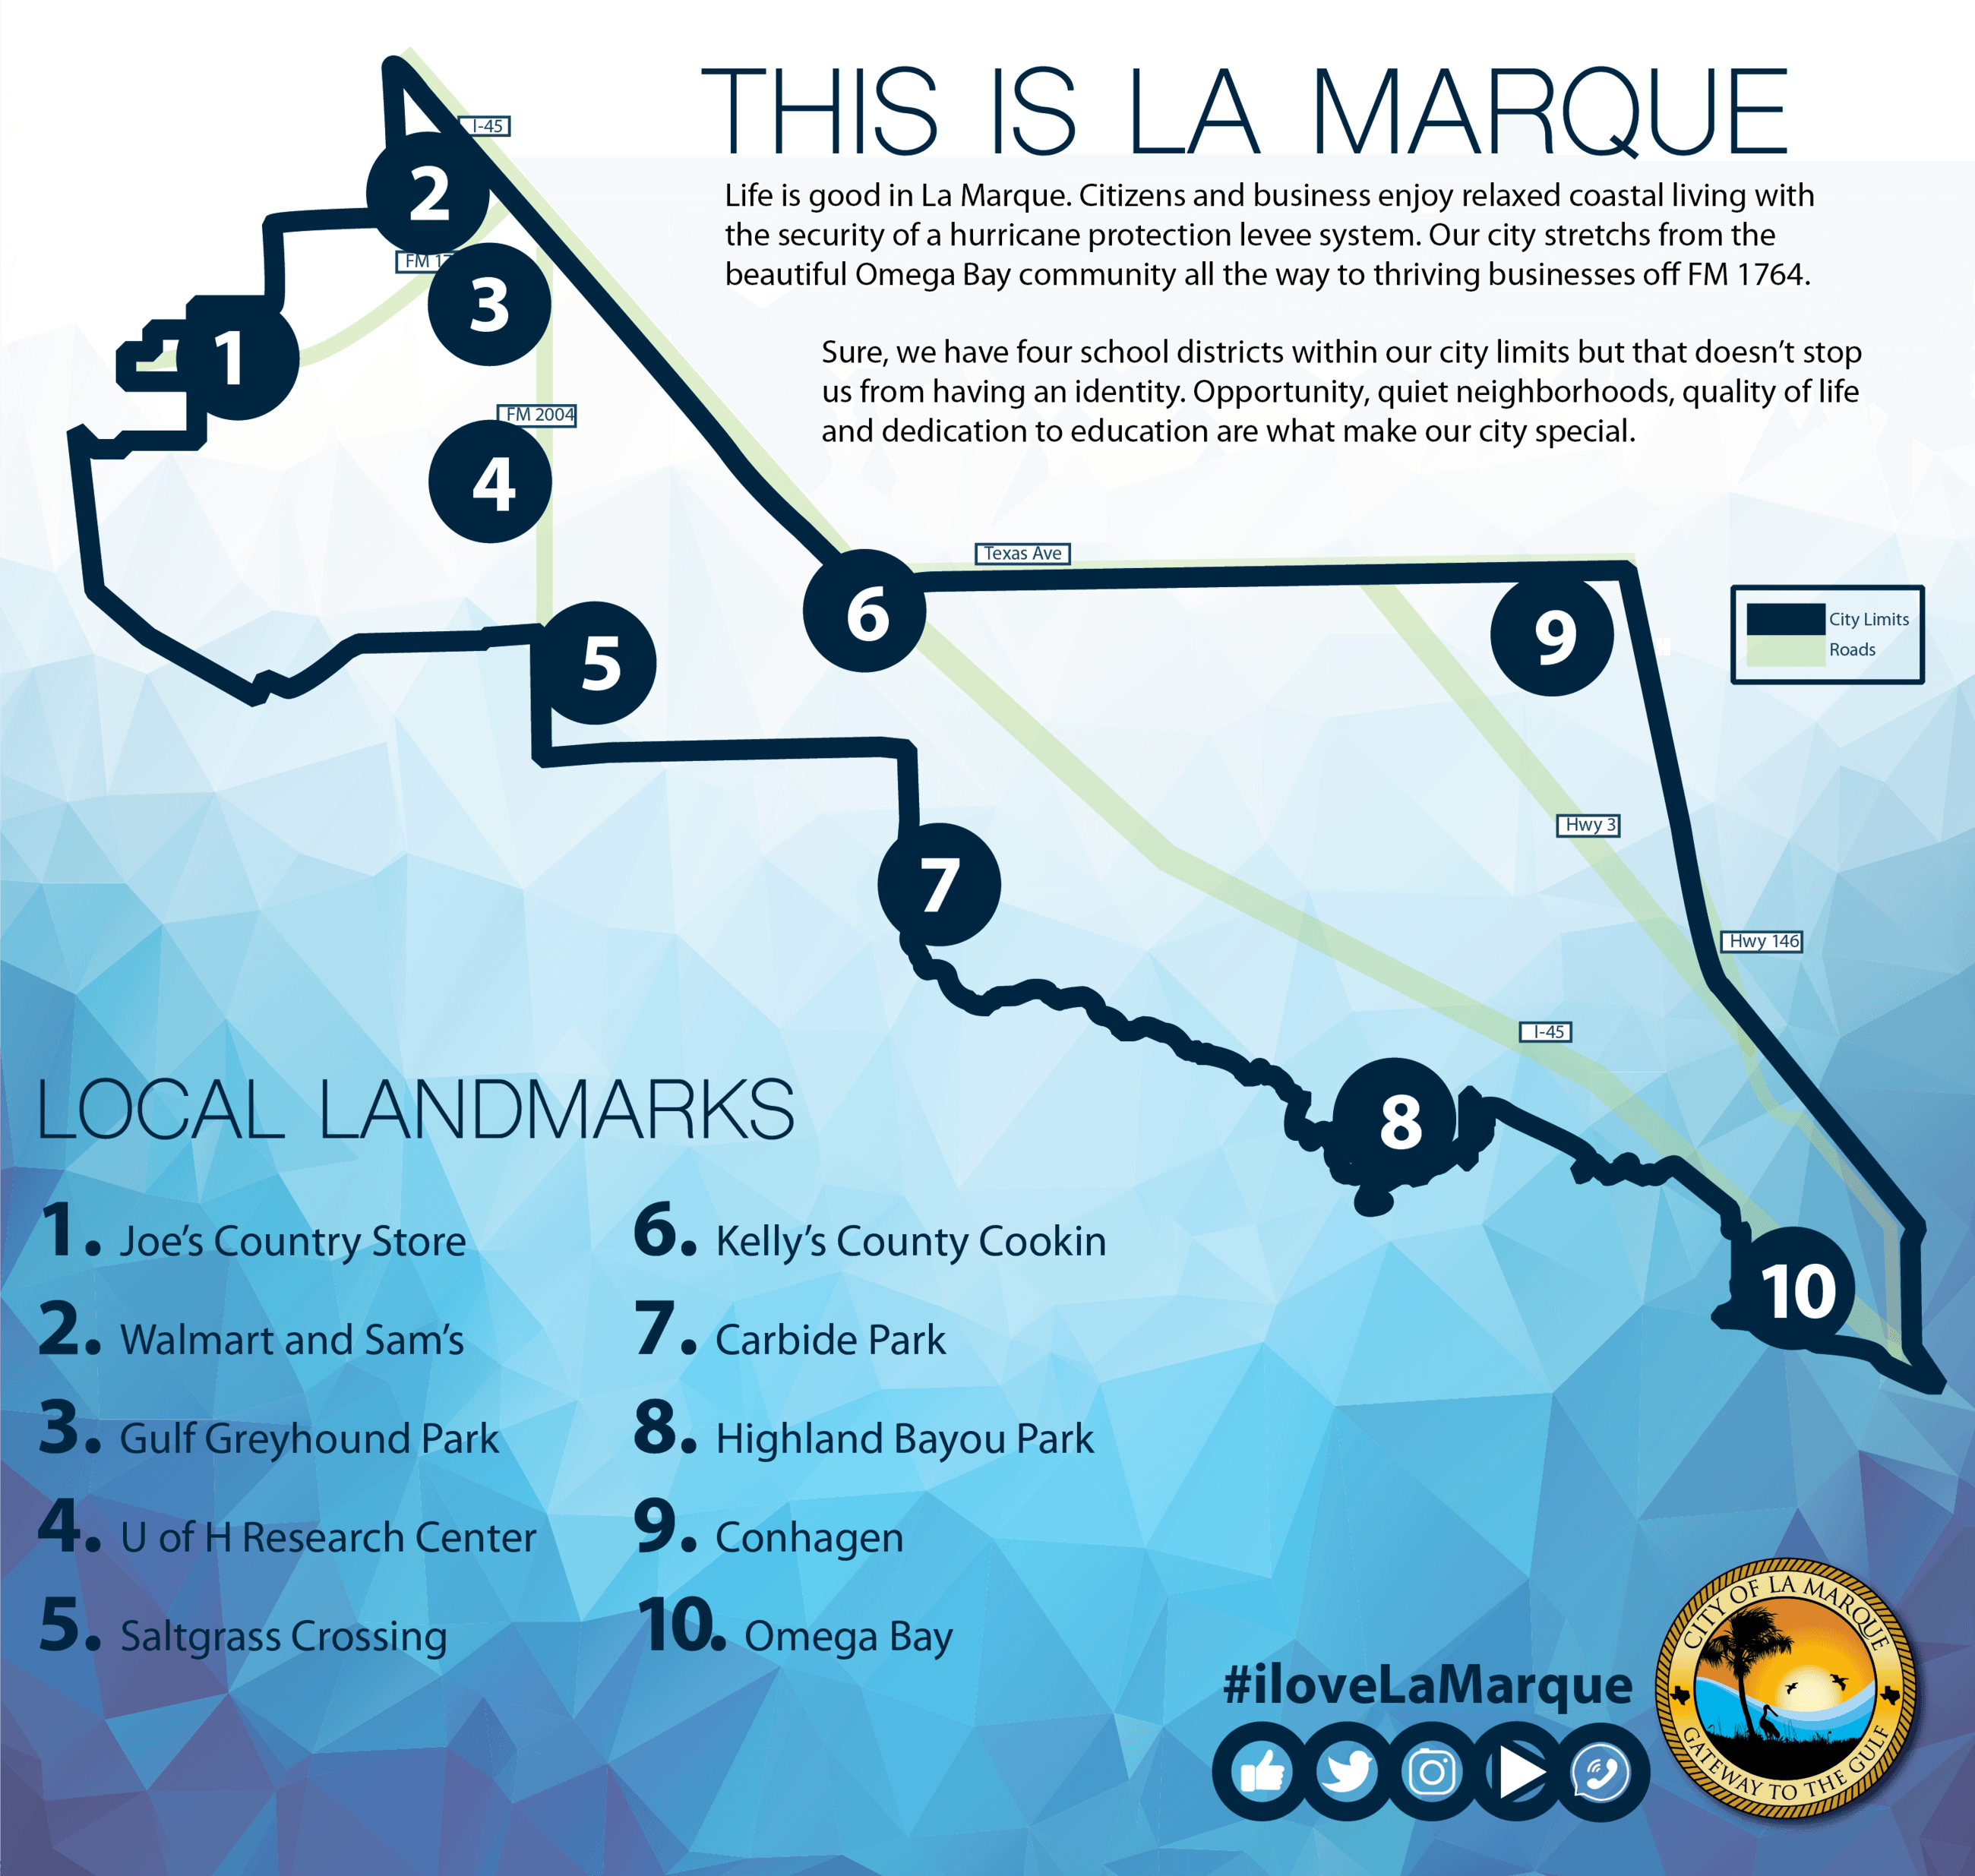 Map of La Marque showing landmarks